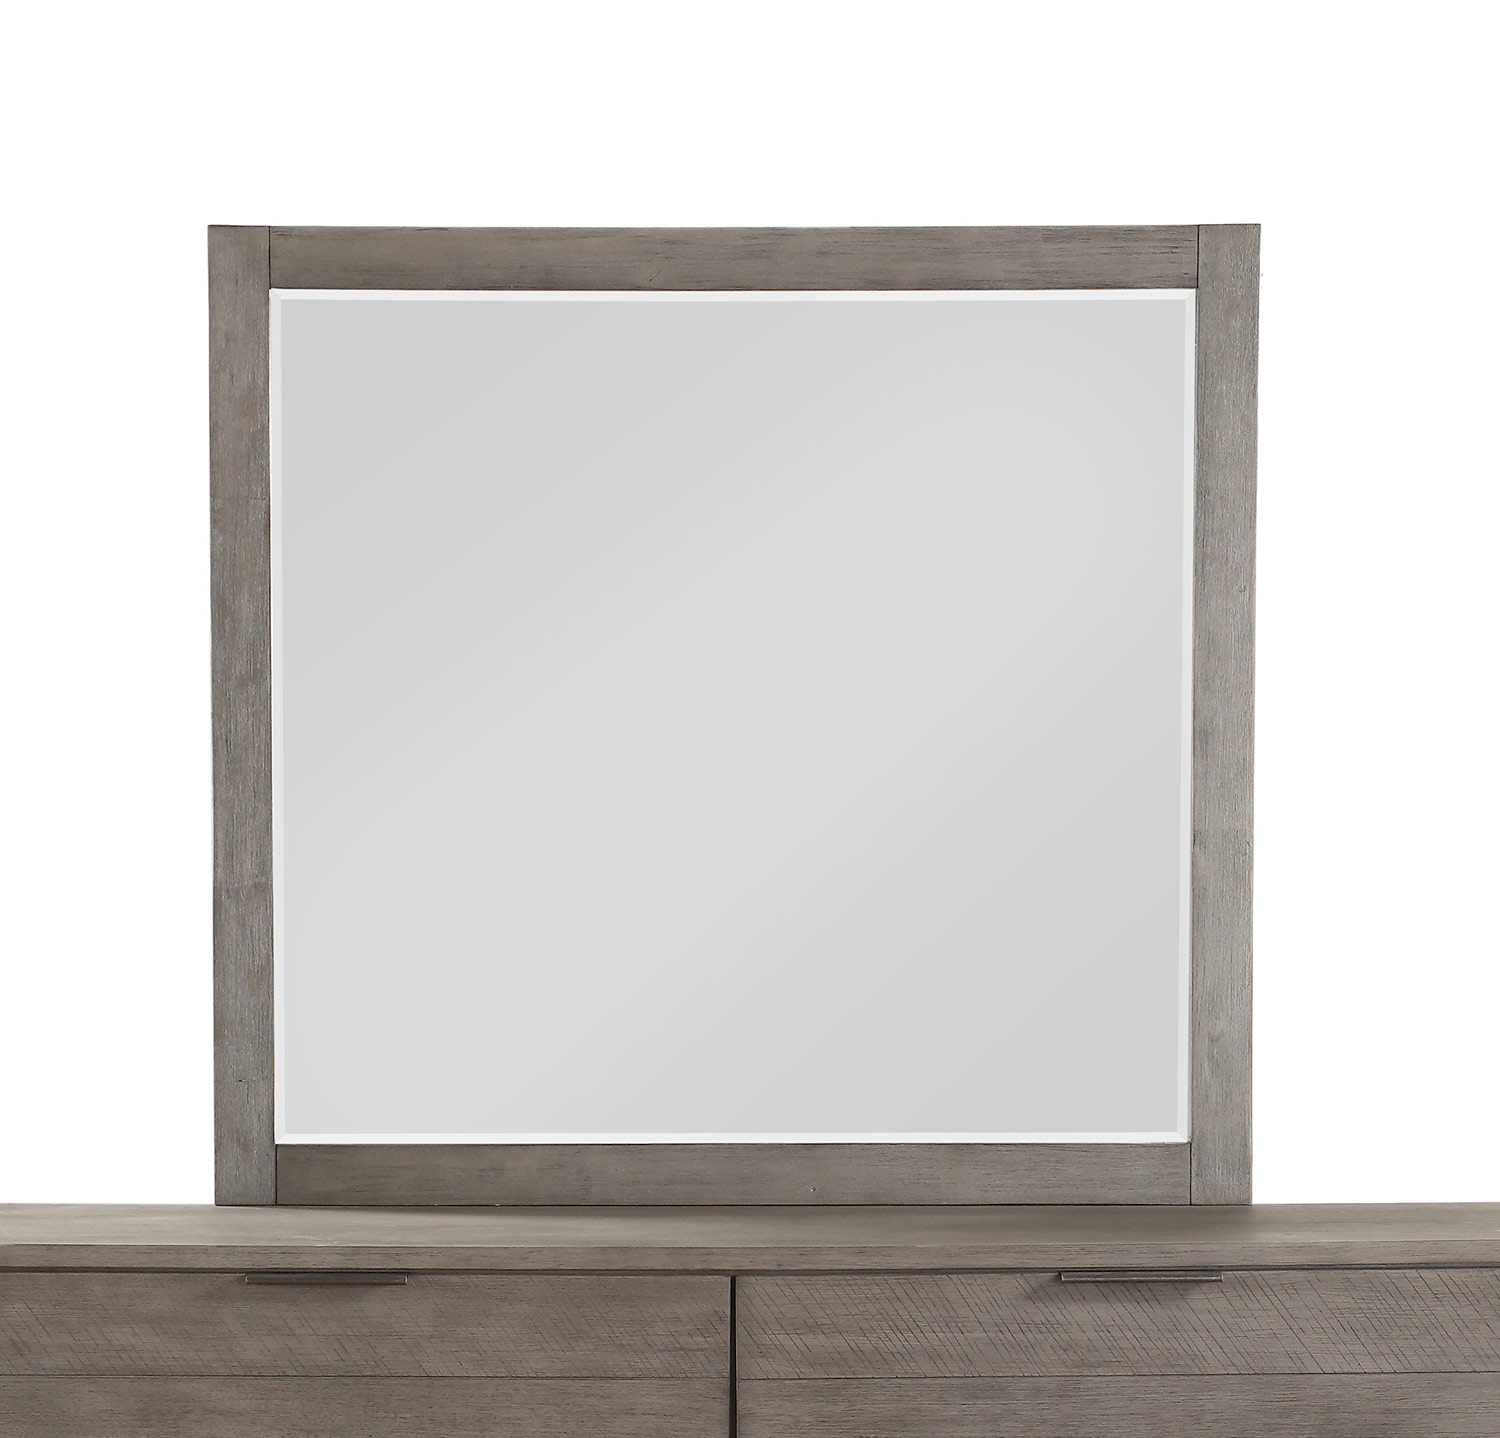 Homelegance Urbanite Mirror - Brown-Gray